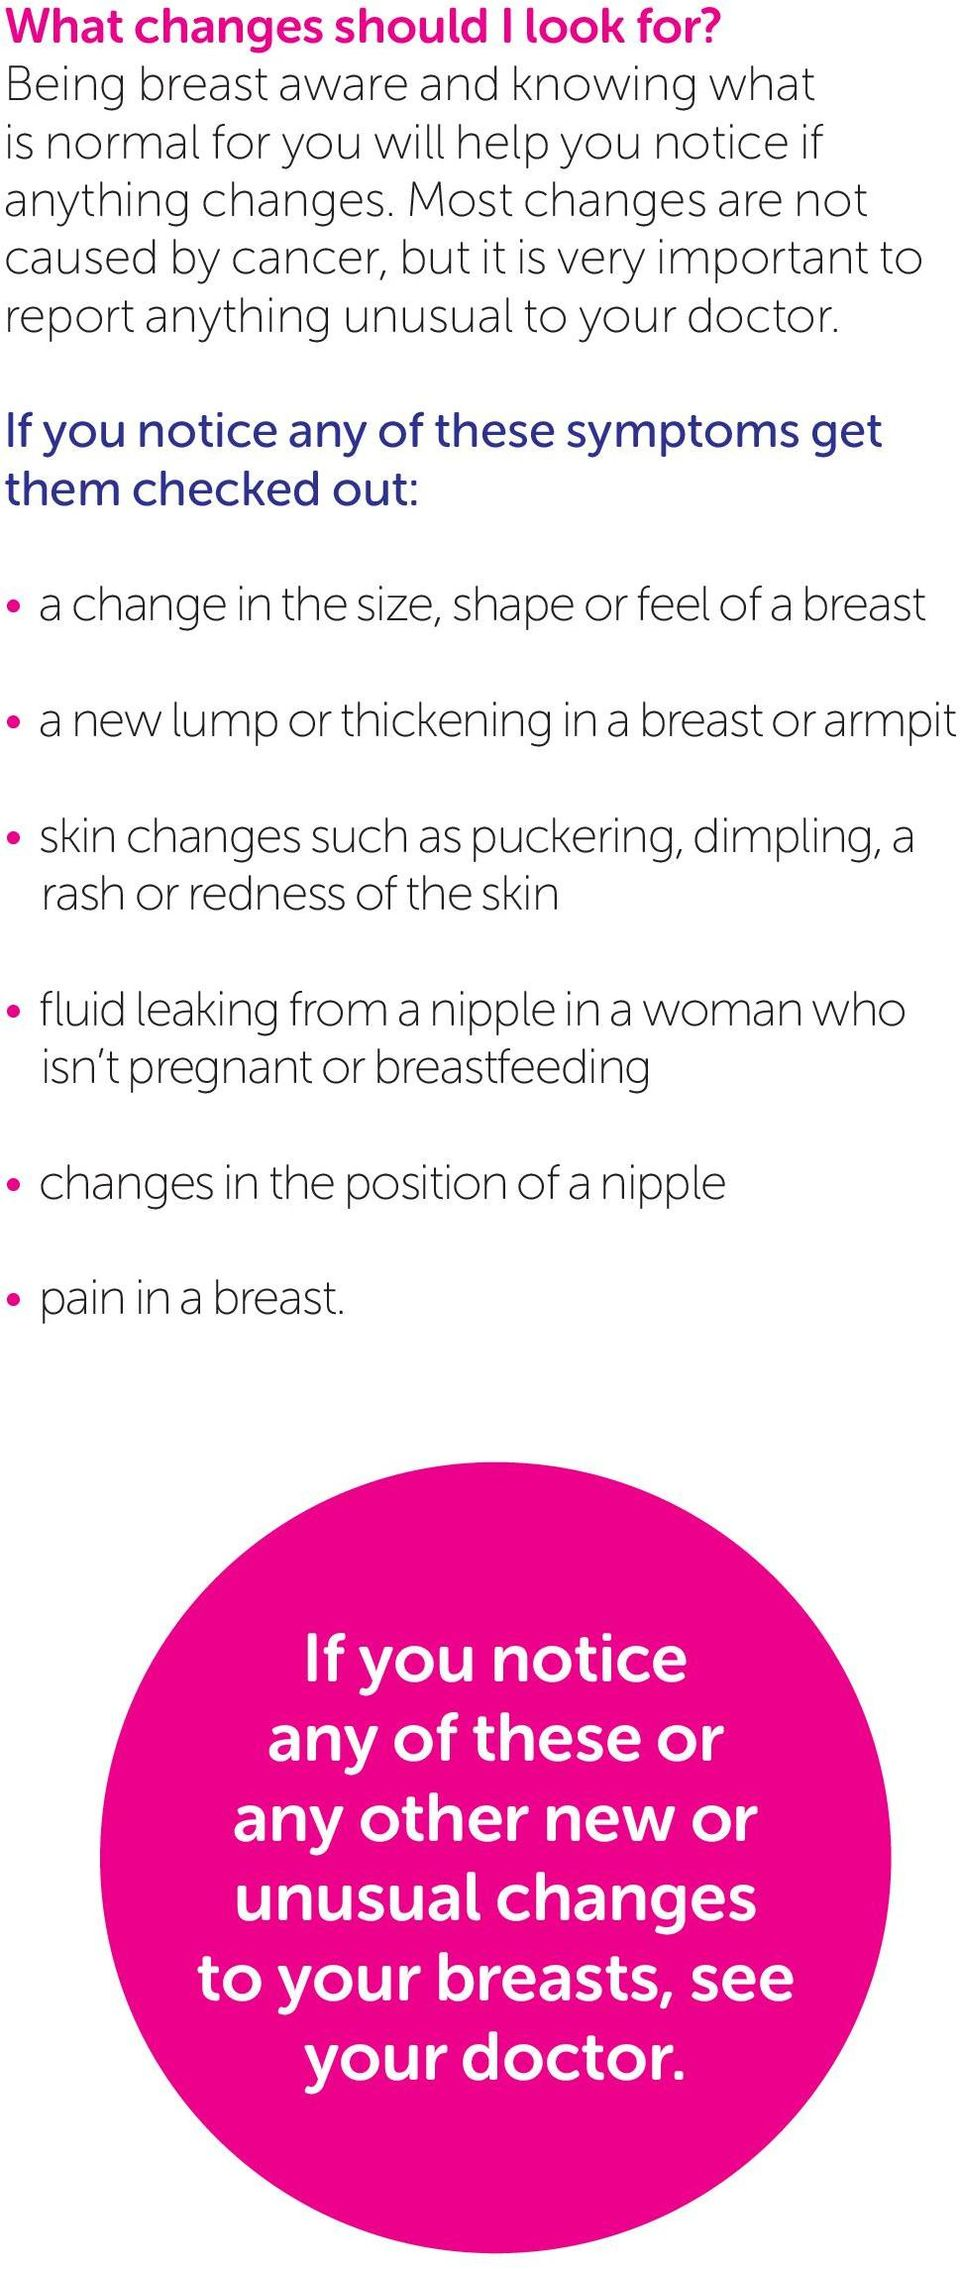 If you notice any of these symptoms get them checked out: a change in the size, shape or feel of a breast a new lump or thickening in a breast or armpit skin changes such